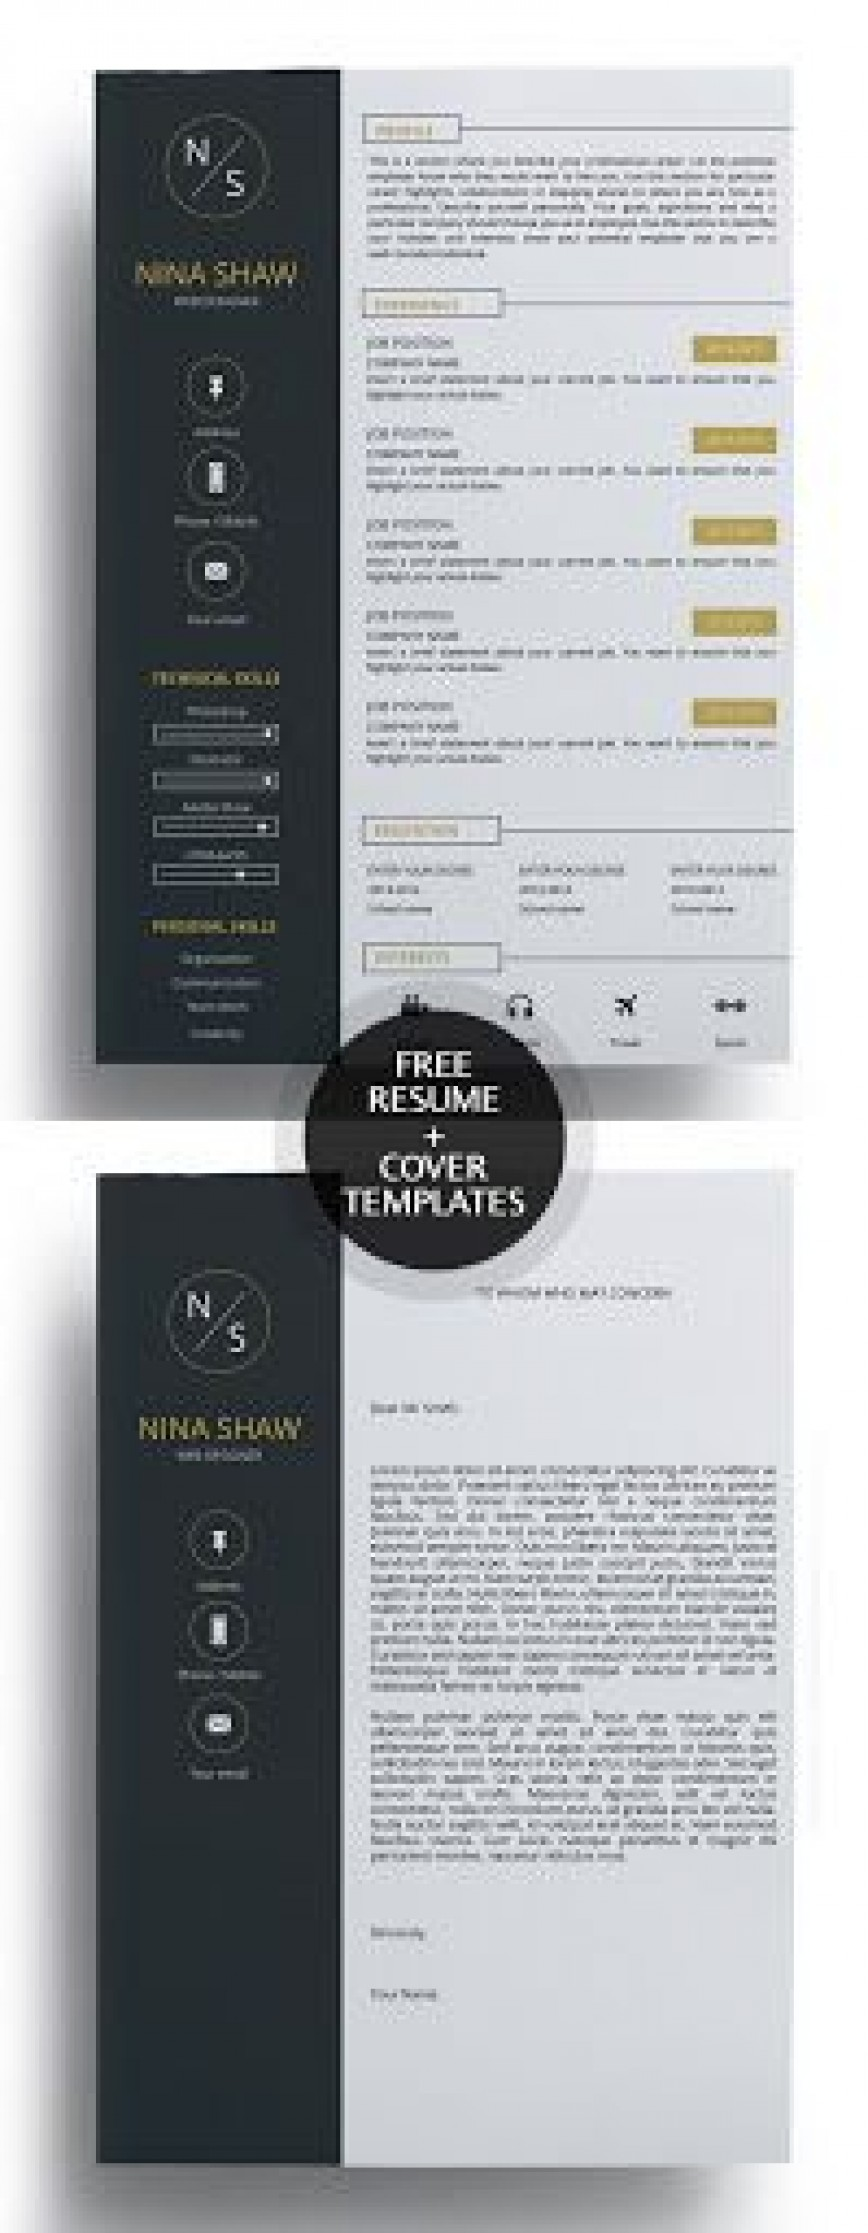 009 Fearsome Free Download Cv Cover Letter Template Example  Templates